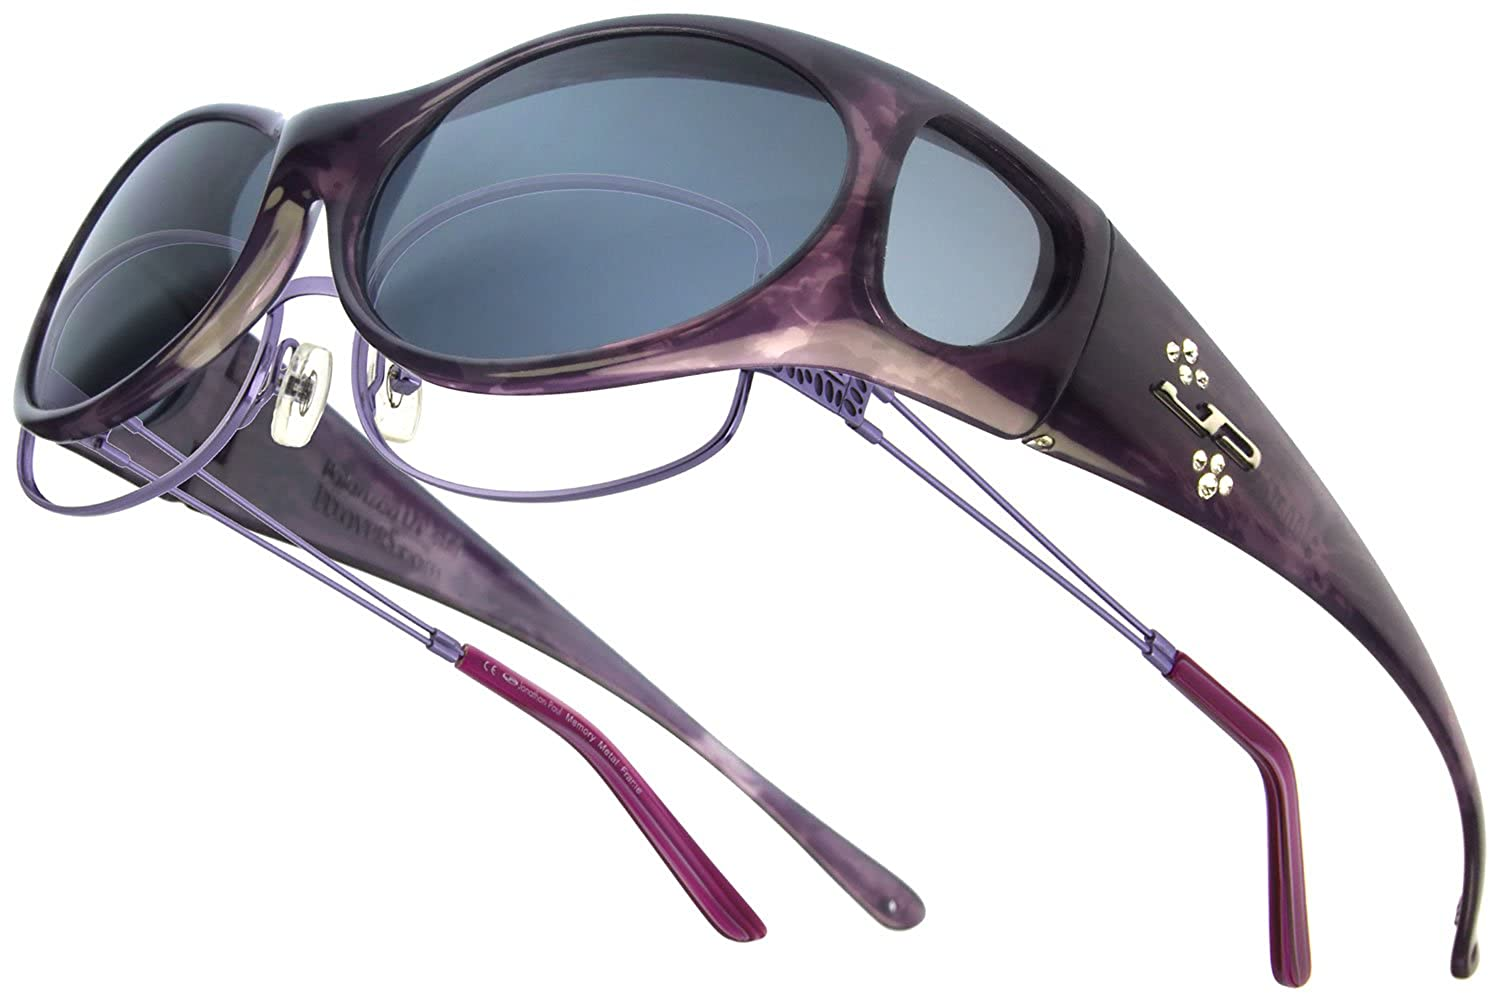 06eed1e24e99 Amazon.com  Fitovers Eyewear Aurora Sunglasses with Swarovski Elements on  temples (Claret